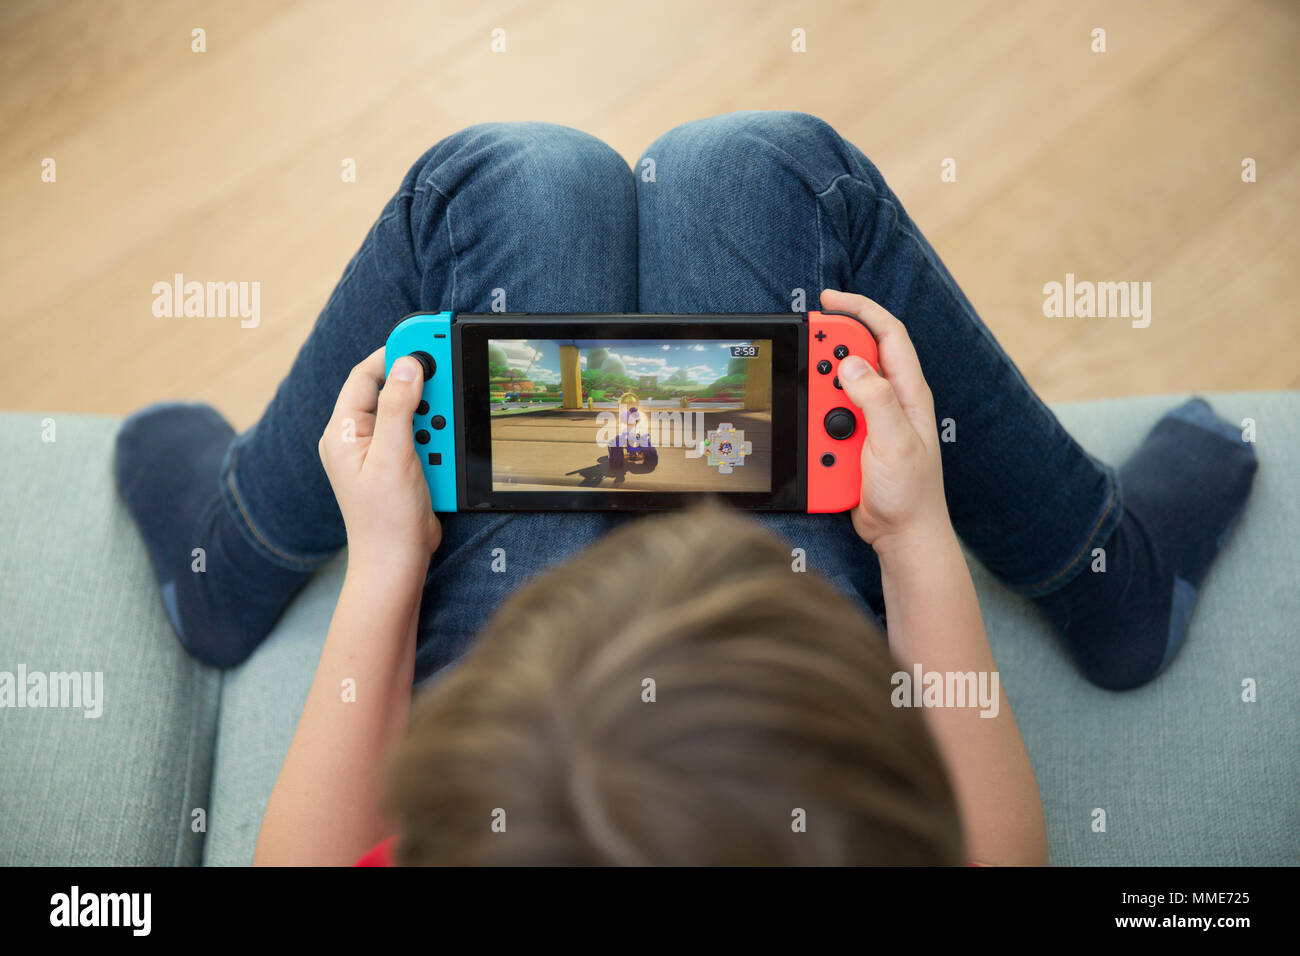 CHILD PLAYING VIDEO GAME Photo Stock